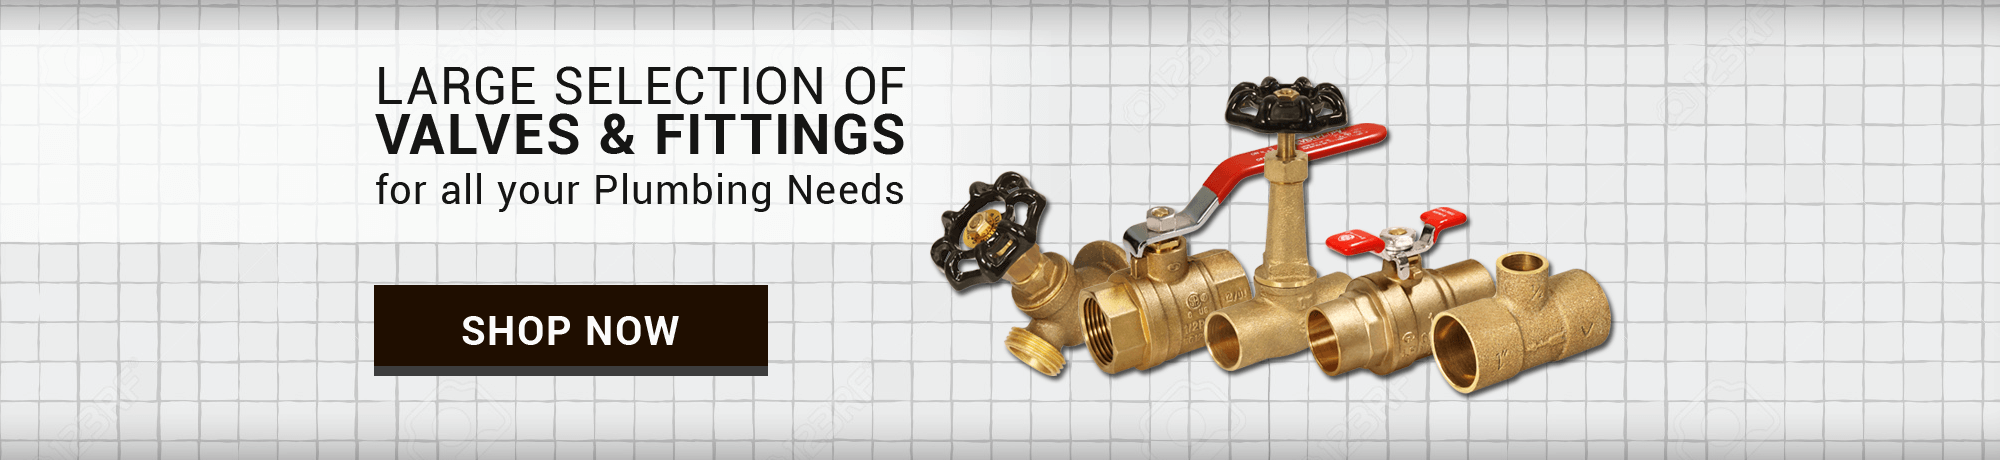 LARGE SELECTION OF VALVES & FITTINGS for all your Plumbing Needs . SHOP NOW